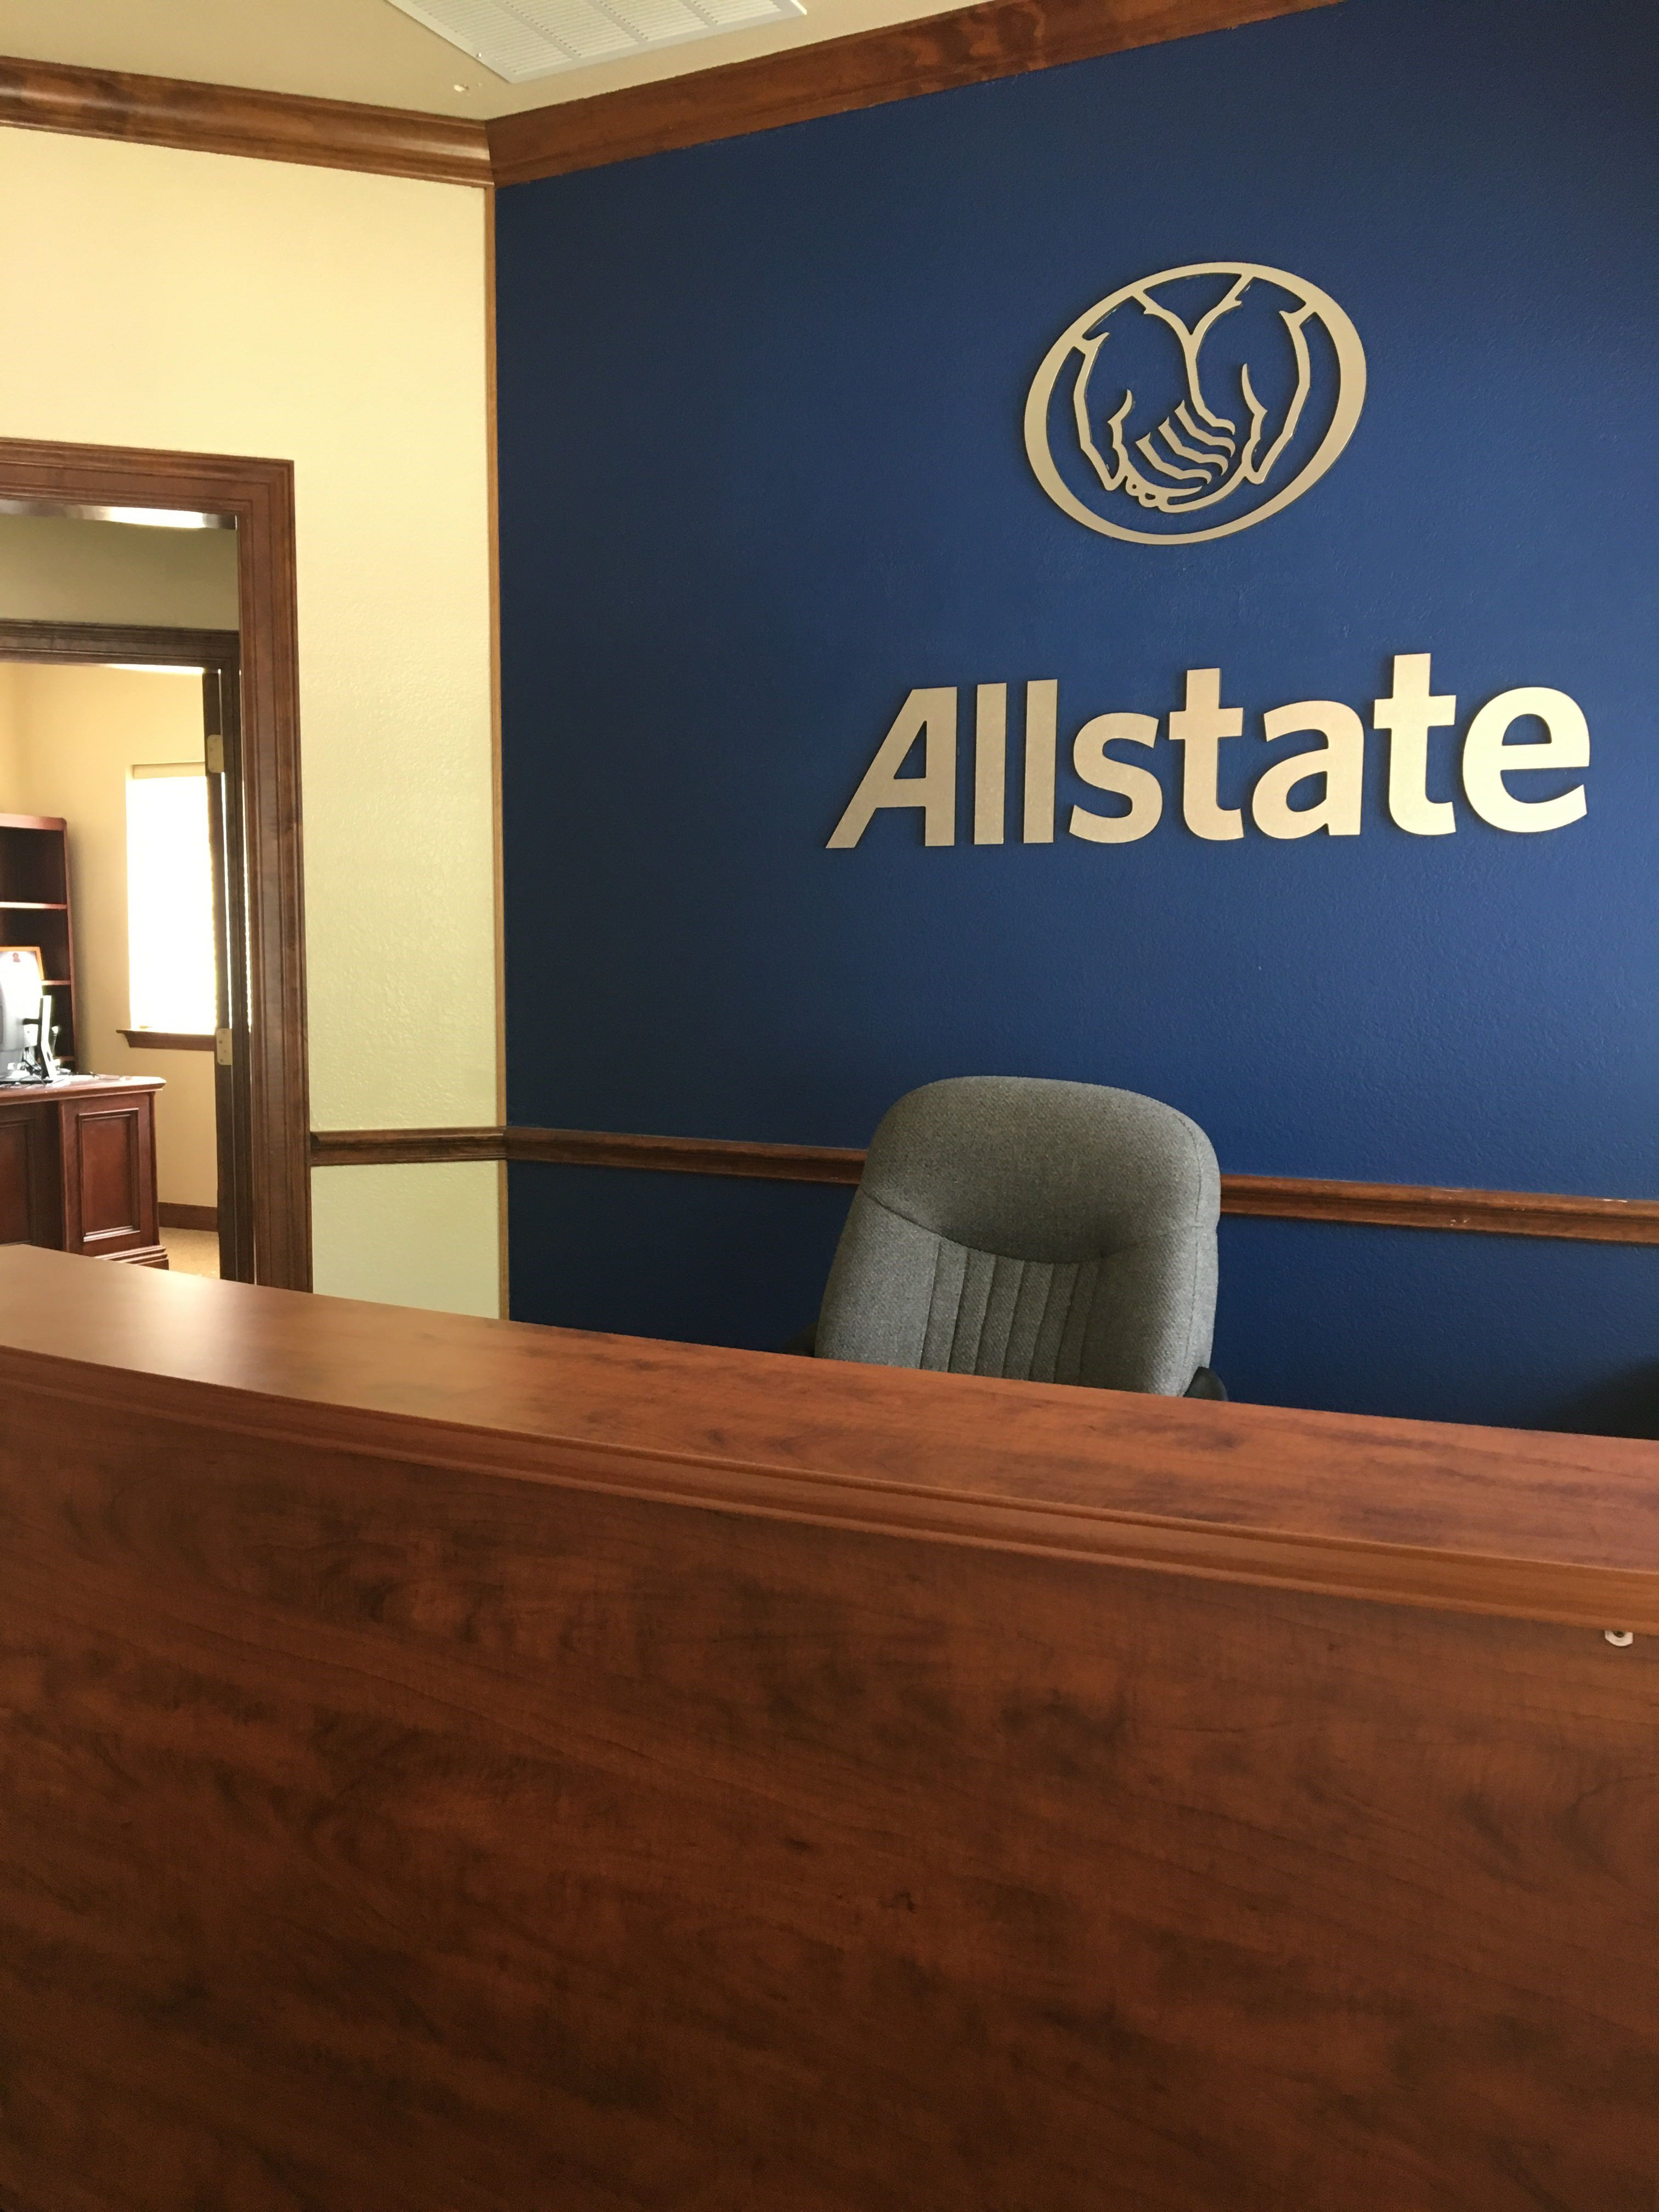 Allstate Insurance Agent: Charles McGriff image 3